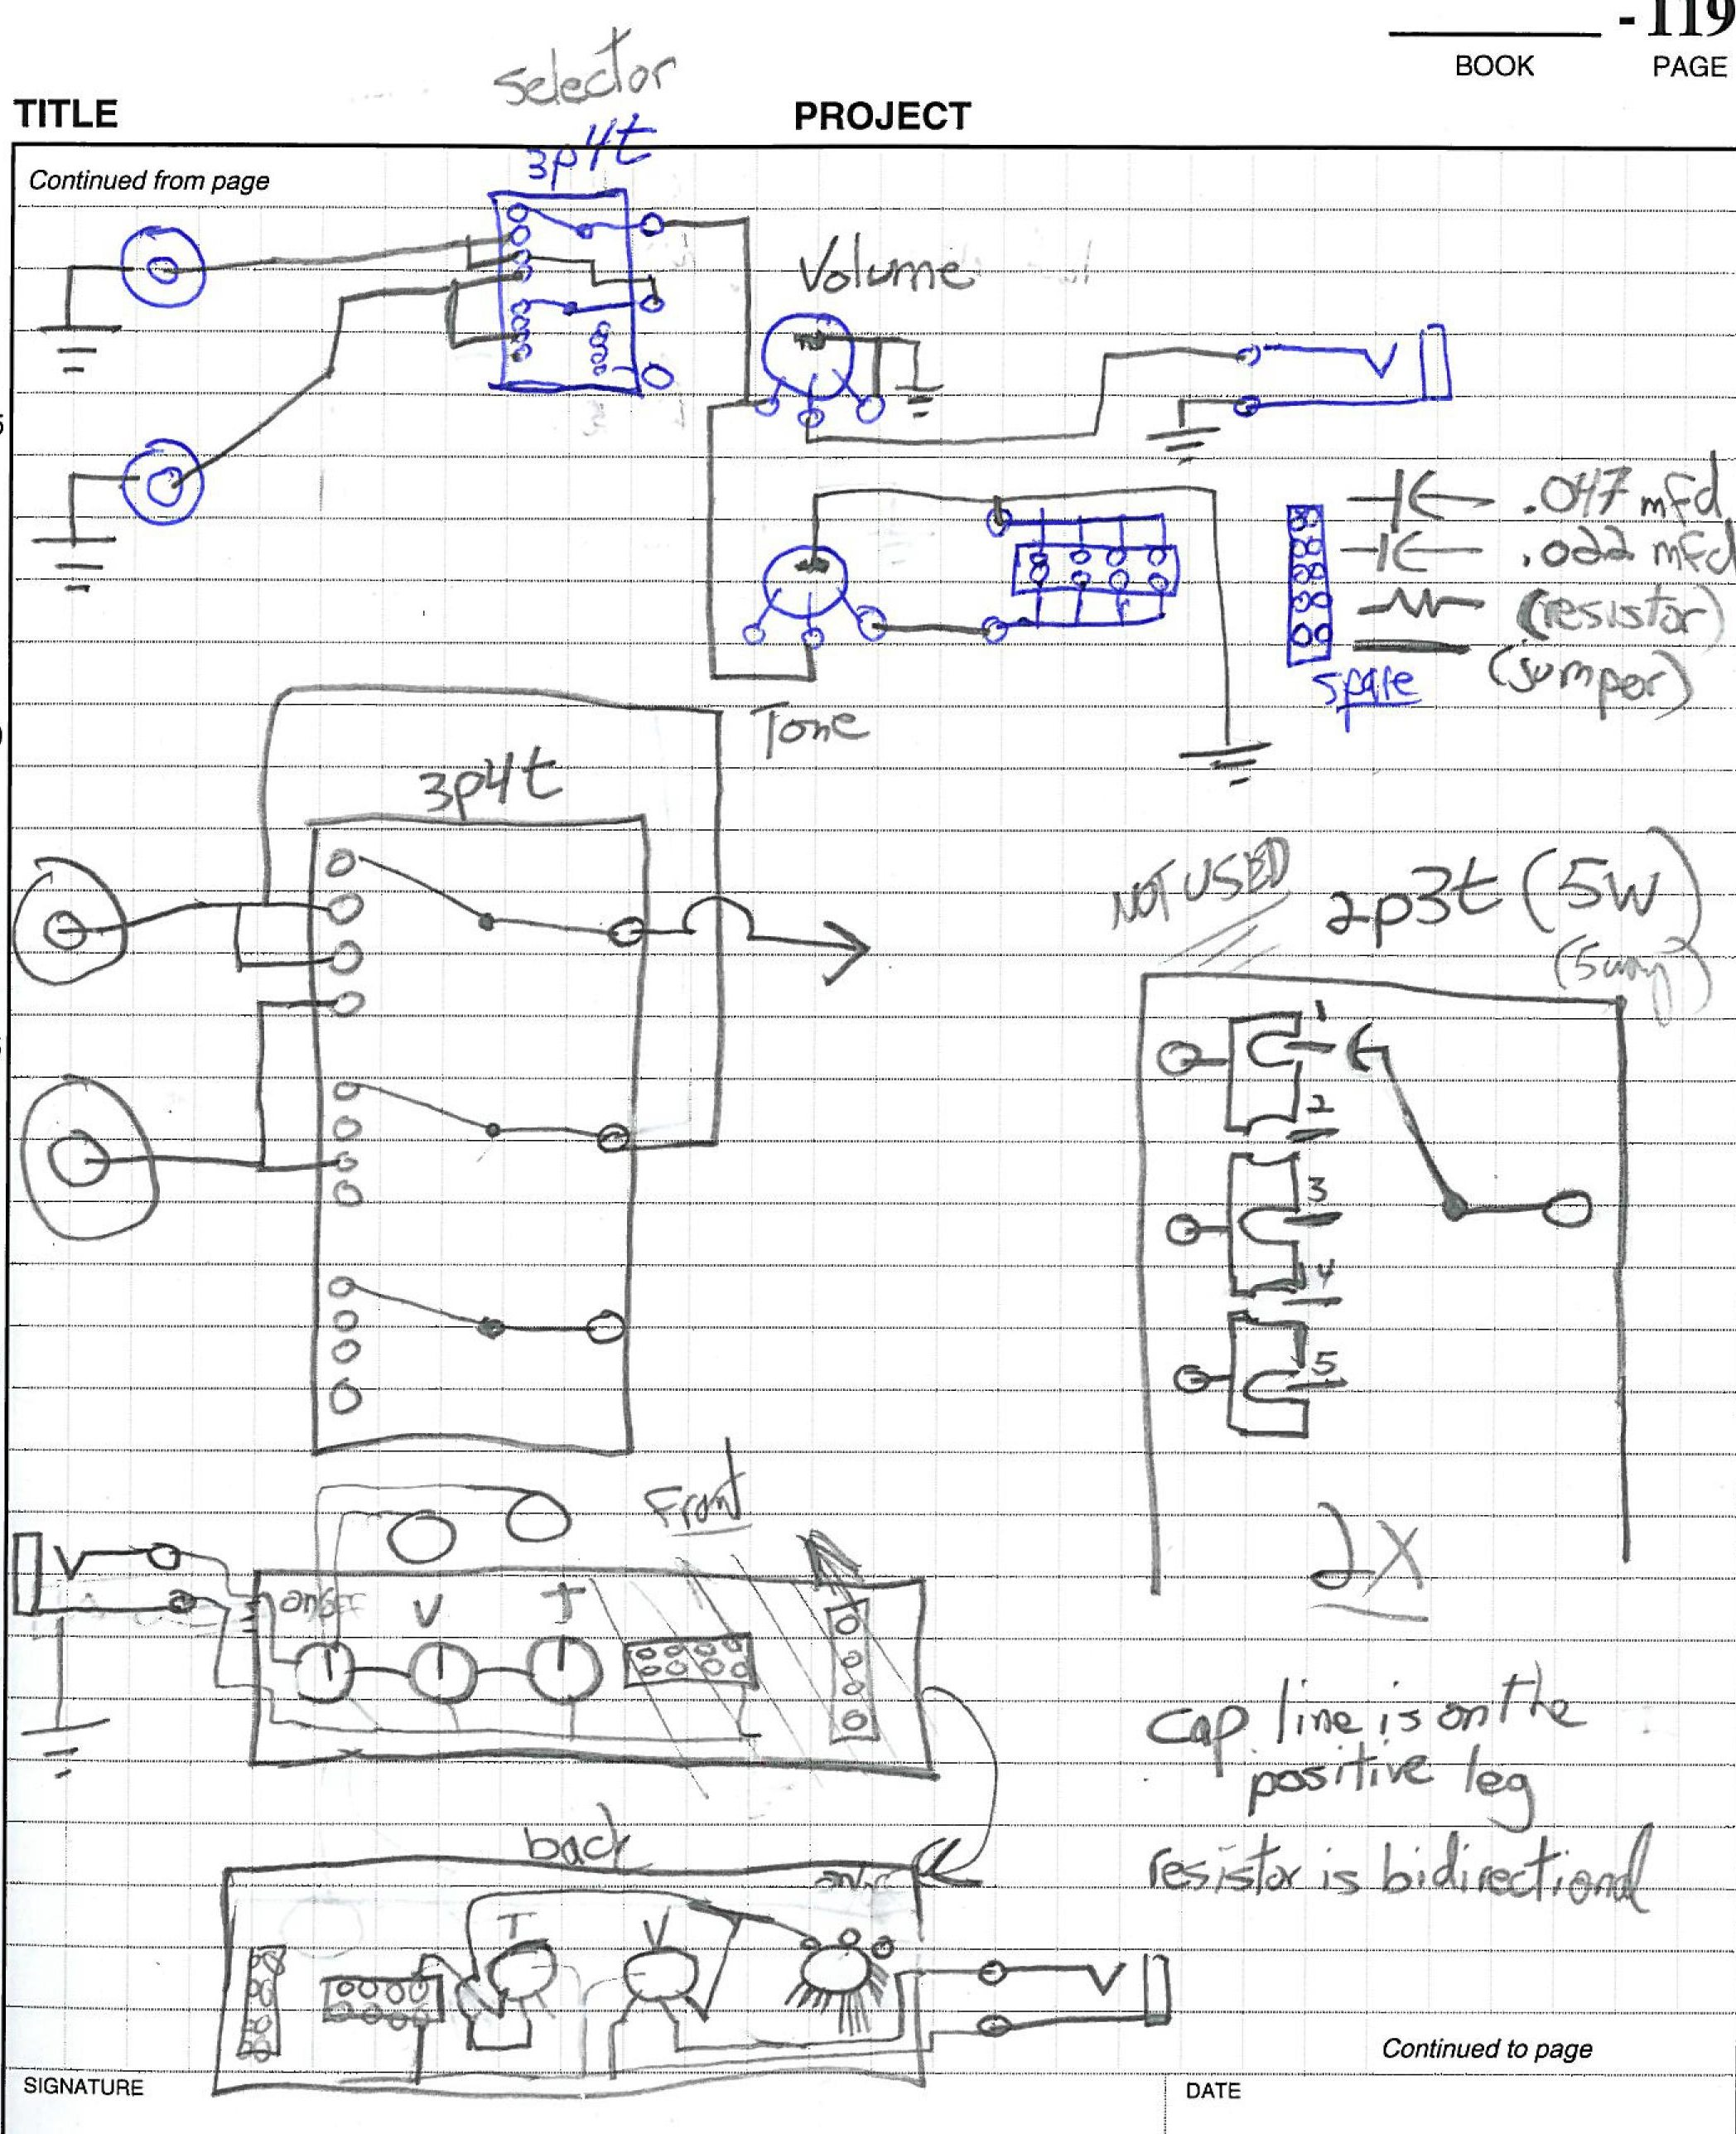 Craftsman Radial Arm Saw Wiring Diagram Free Picture Schematic For Circular Wire Data Dayton Motors